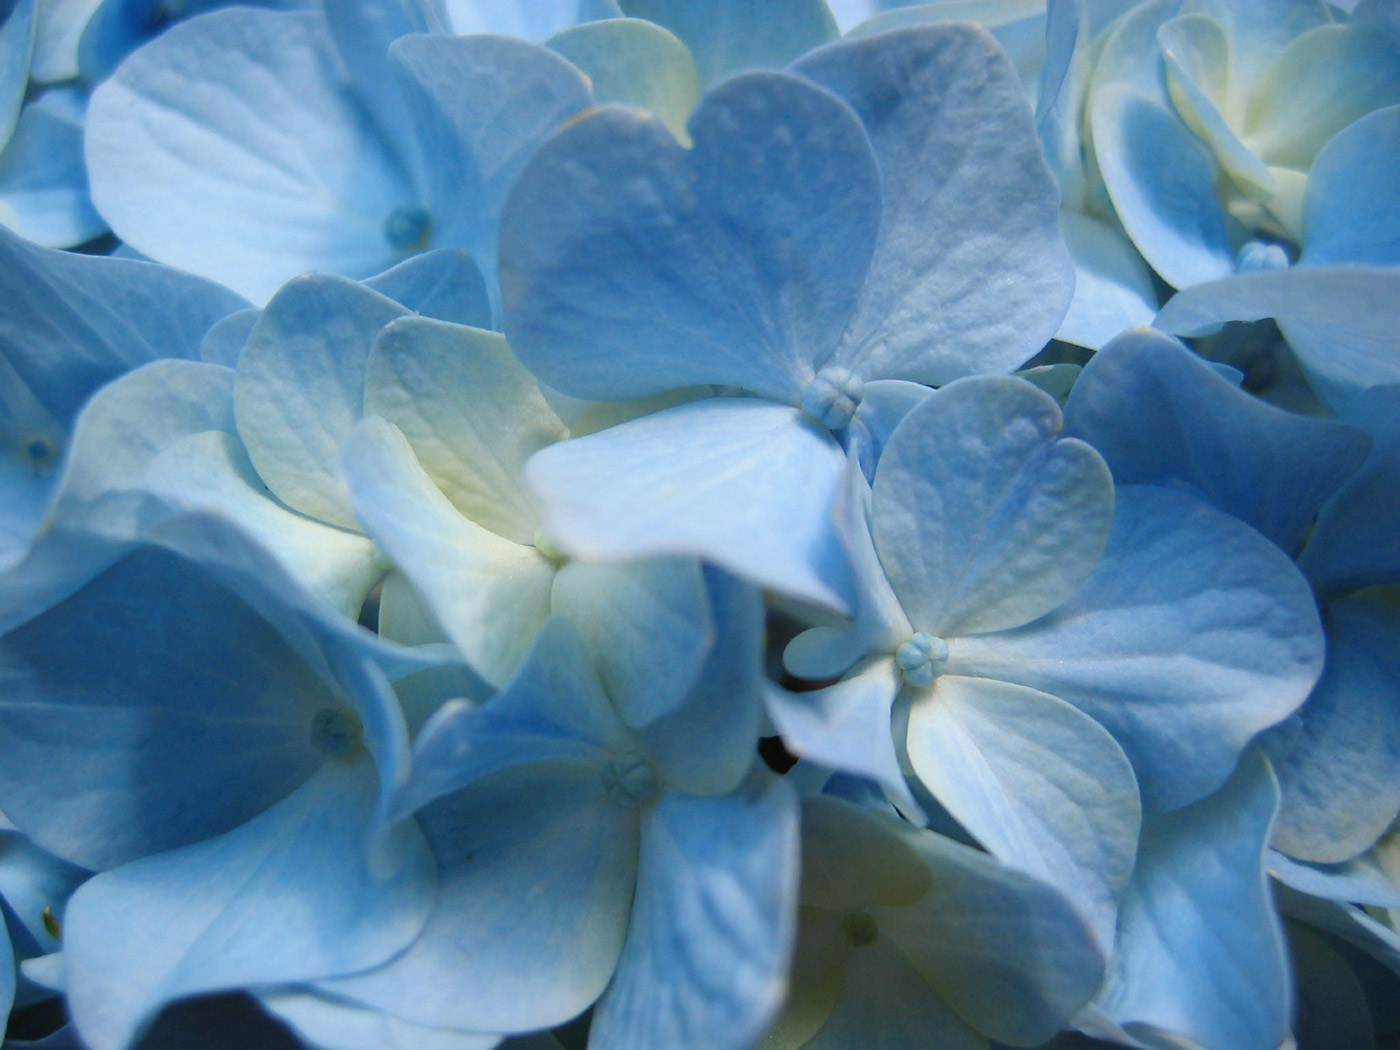 flowers wallpapers blue hydrangea flower close up photography flowers 1400x1050